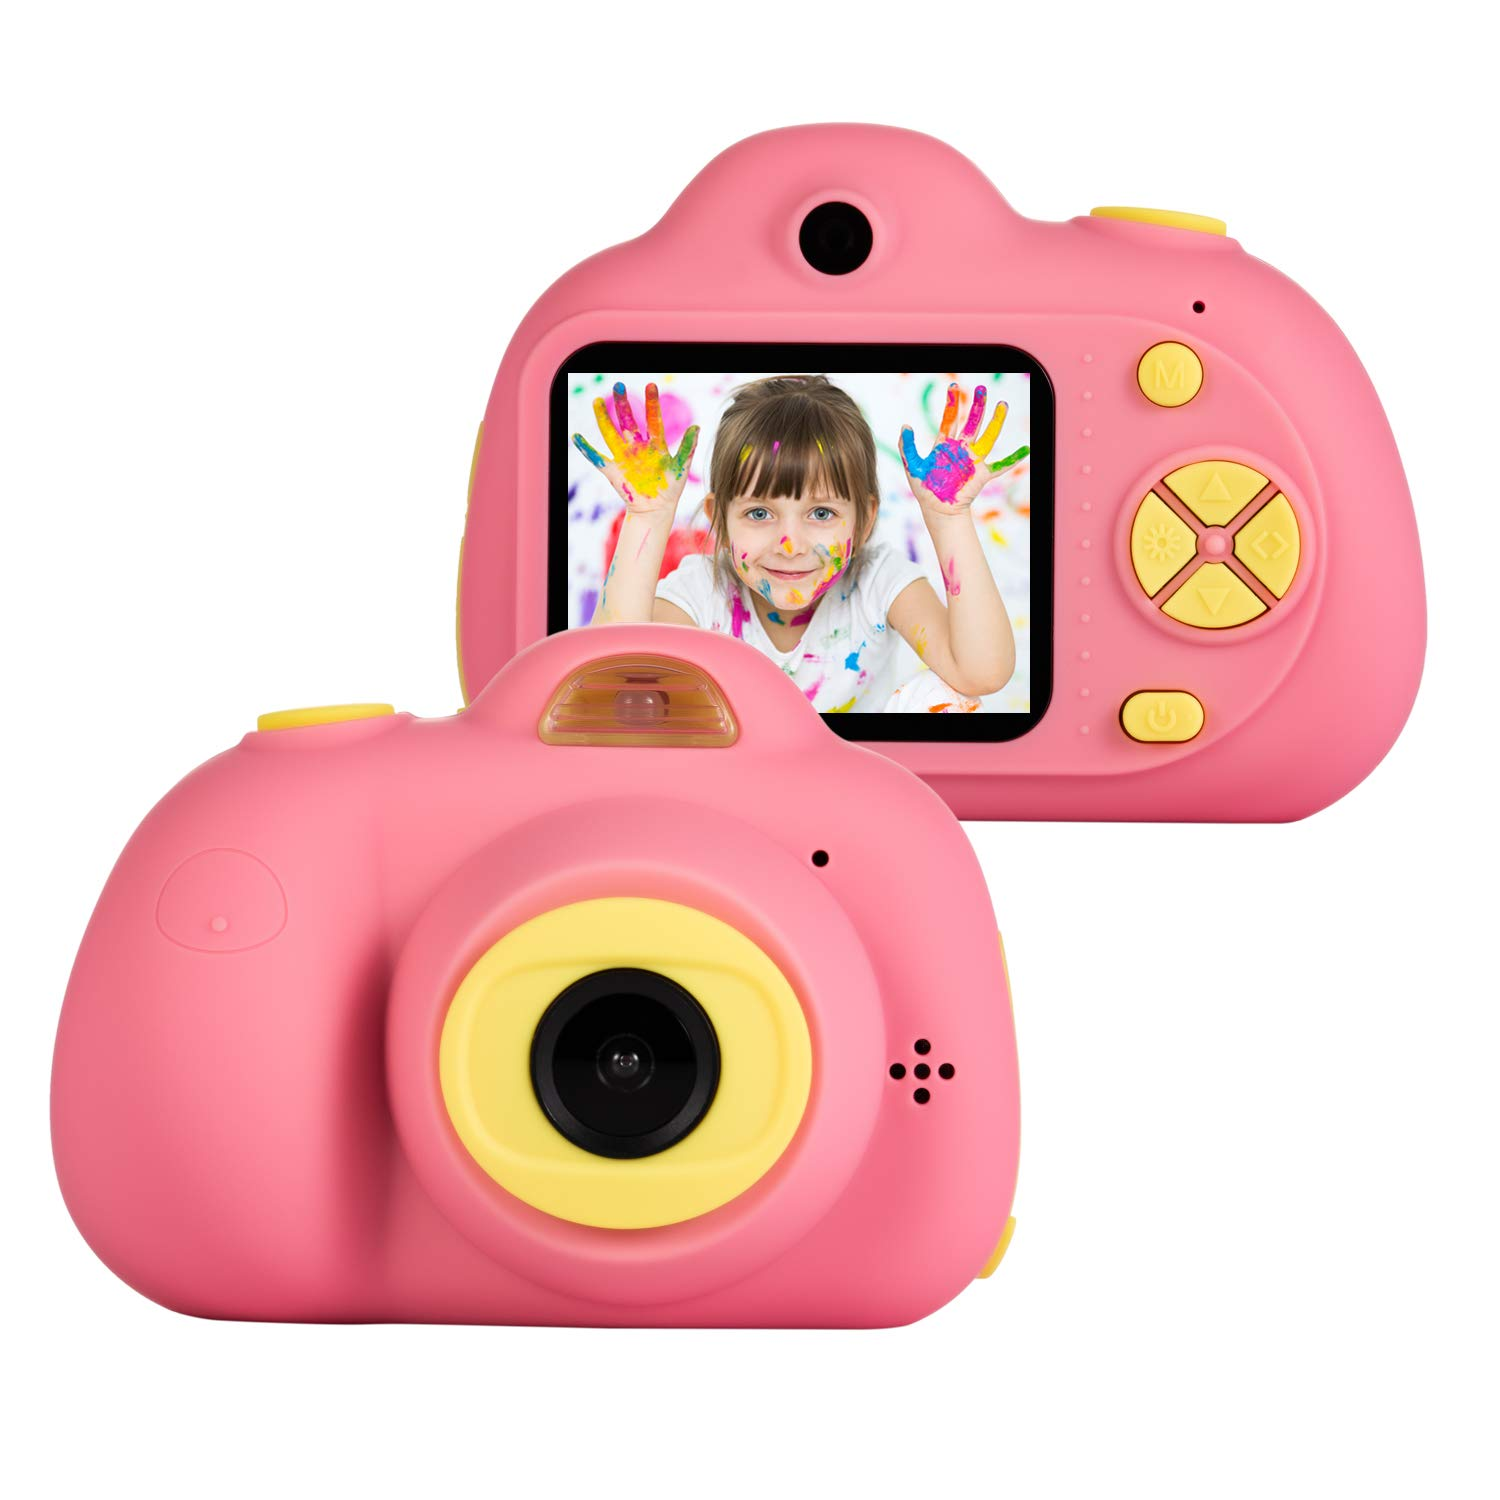 omzer Gift Kids Camera Toys for Girls, Cute Children Cameras Mini Camcorder for 3-8 Years Old Girl with 8MP HD Video Lens Great for Shooting, Deep Pink(16GB Memory Card Included) by omzer (Image #1)